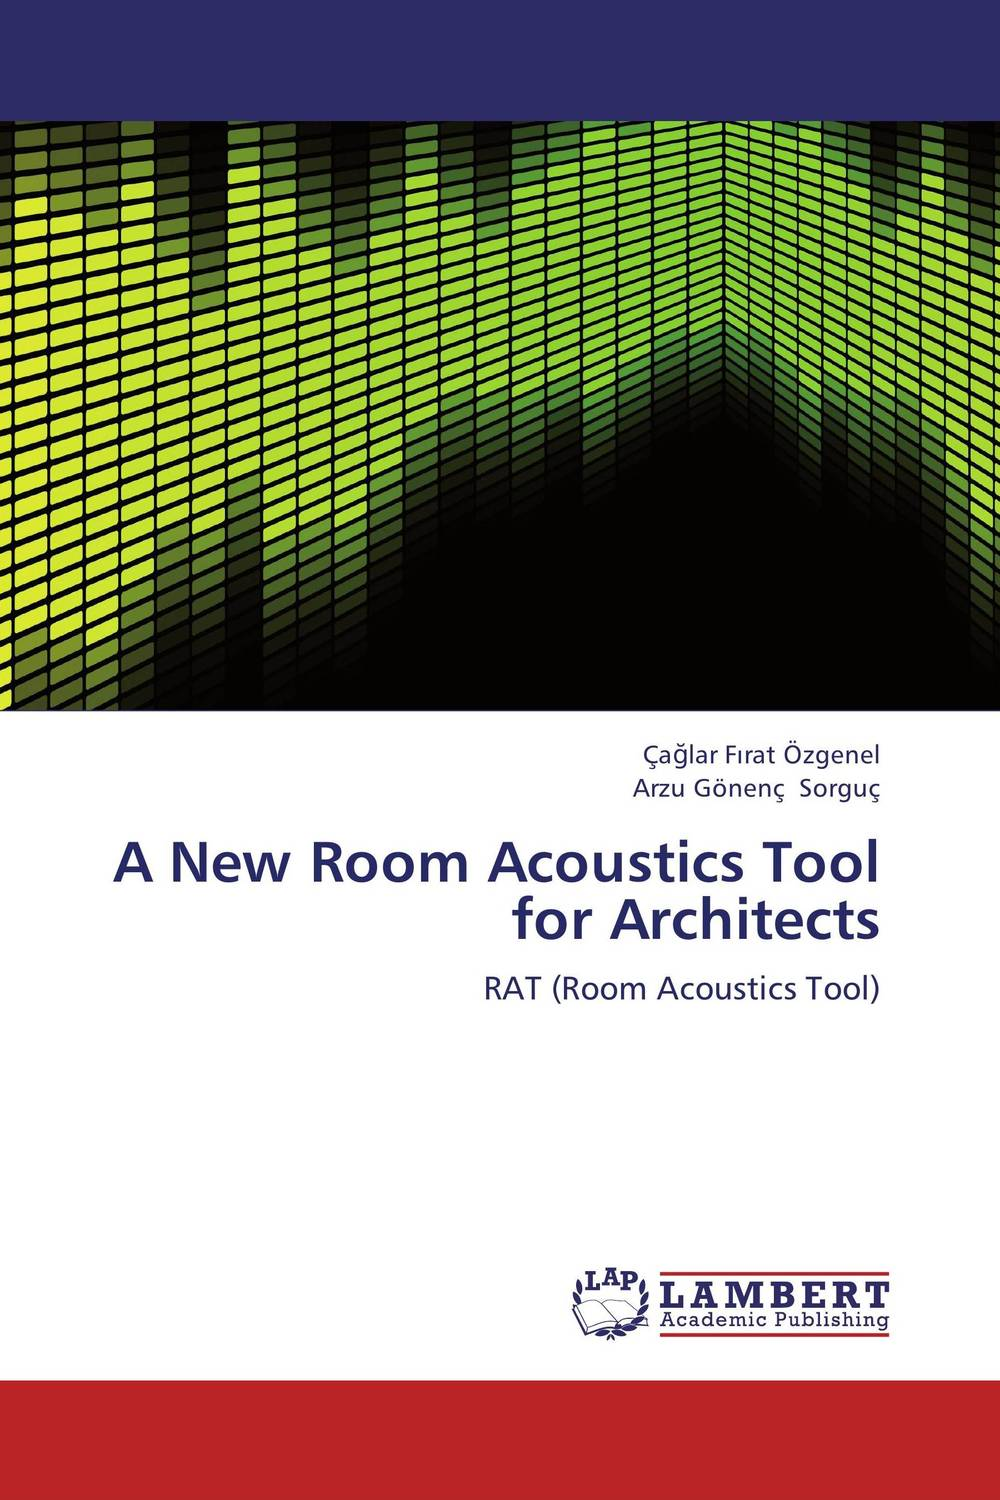 A New Room Acoustics Tool for Architects performance evaluation of disparity for stereo images